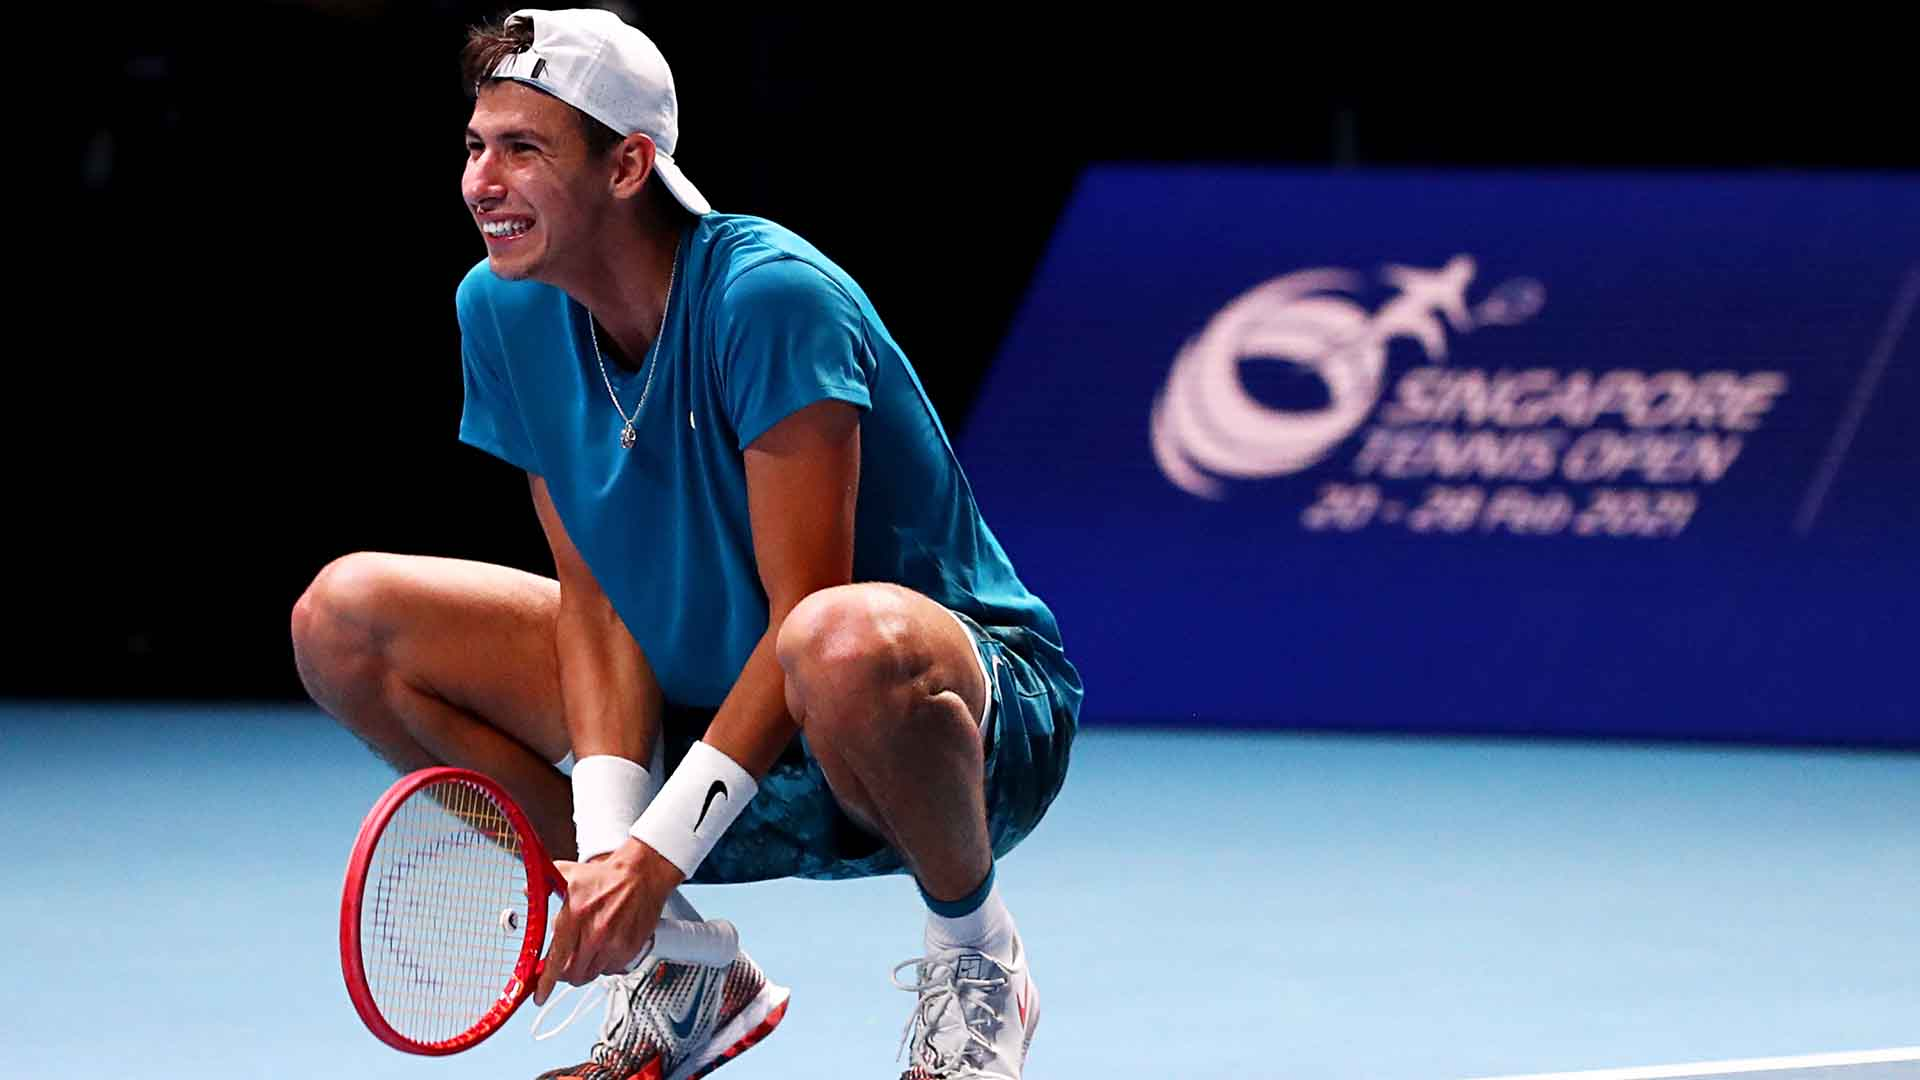 Alexei Popyrin breaks Alexander Bublik on five occasions to capture the Singapore Tennis Open trophy.